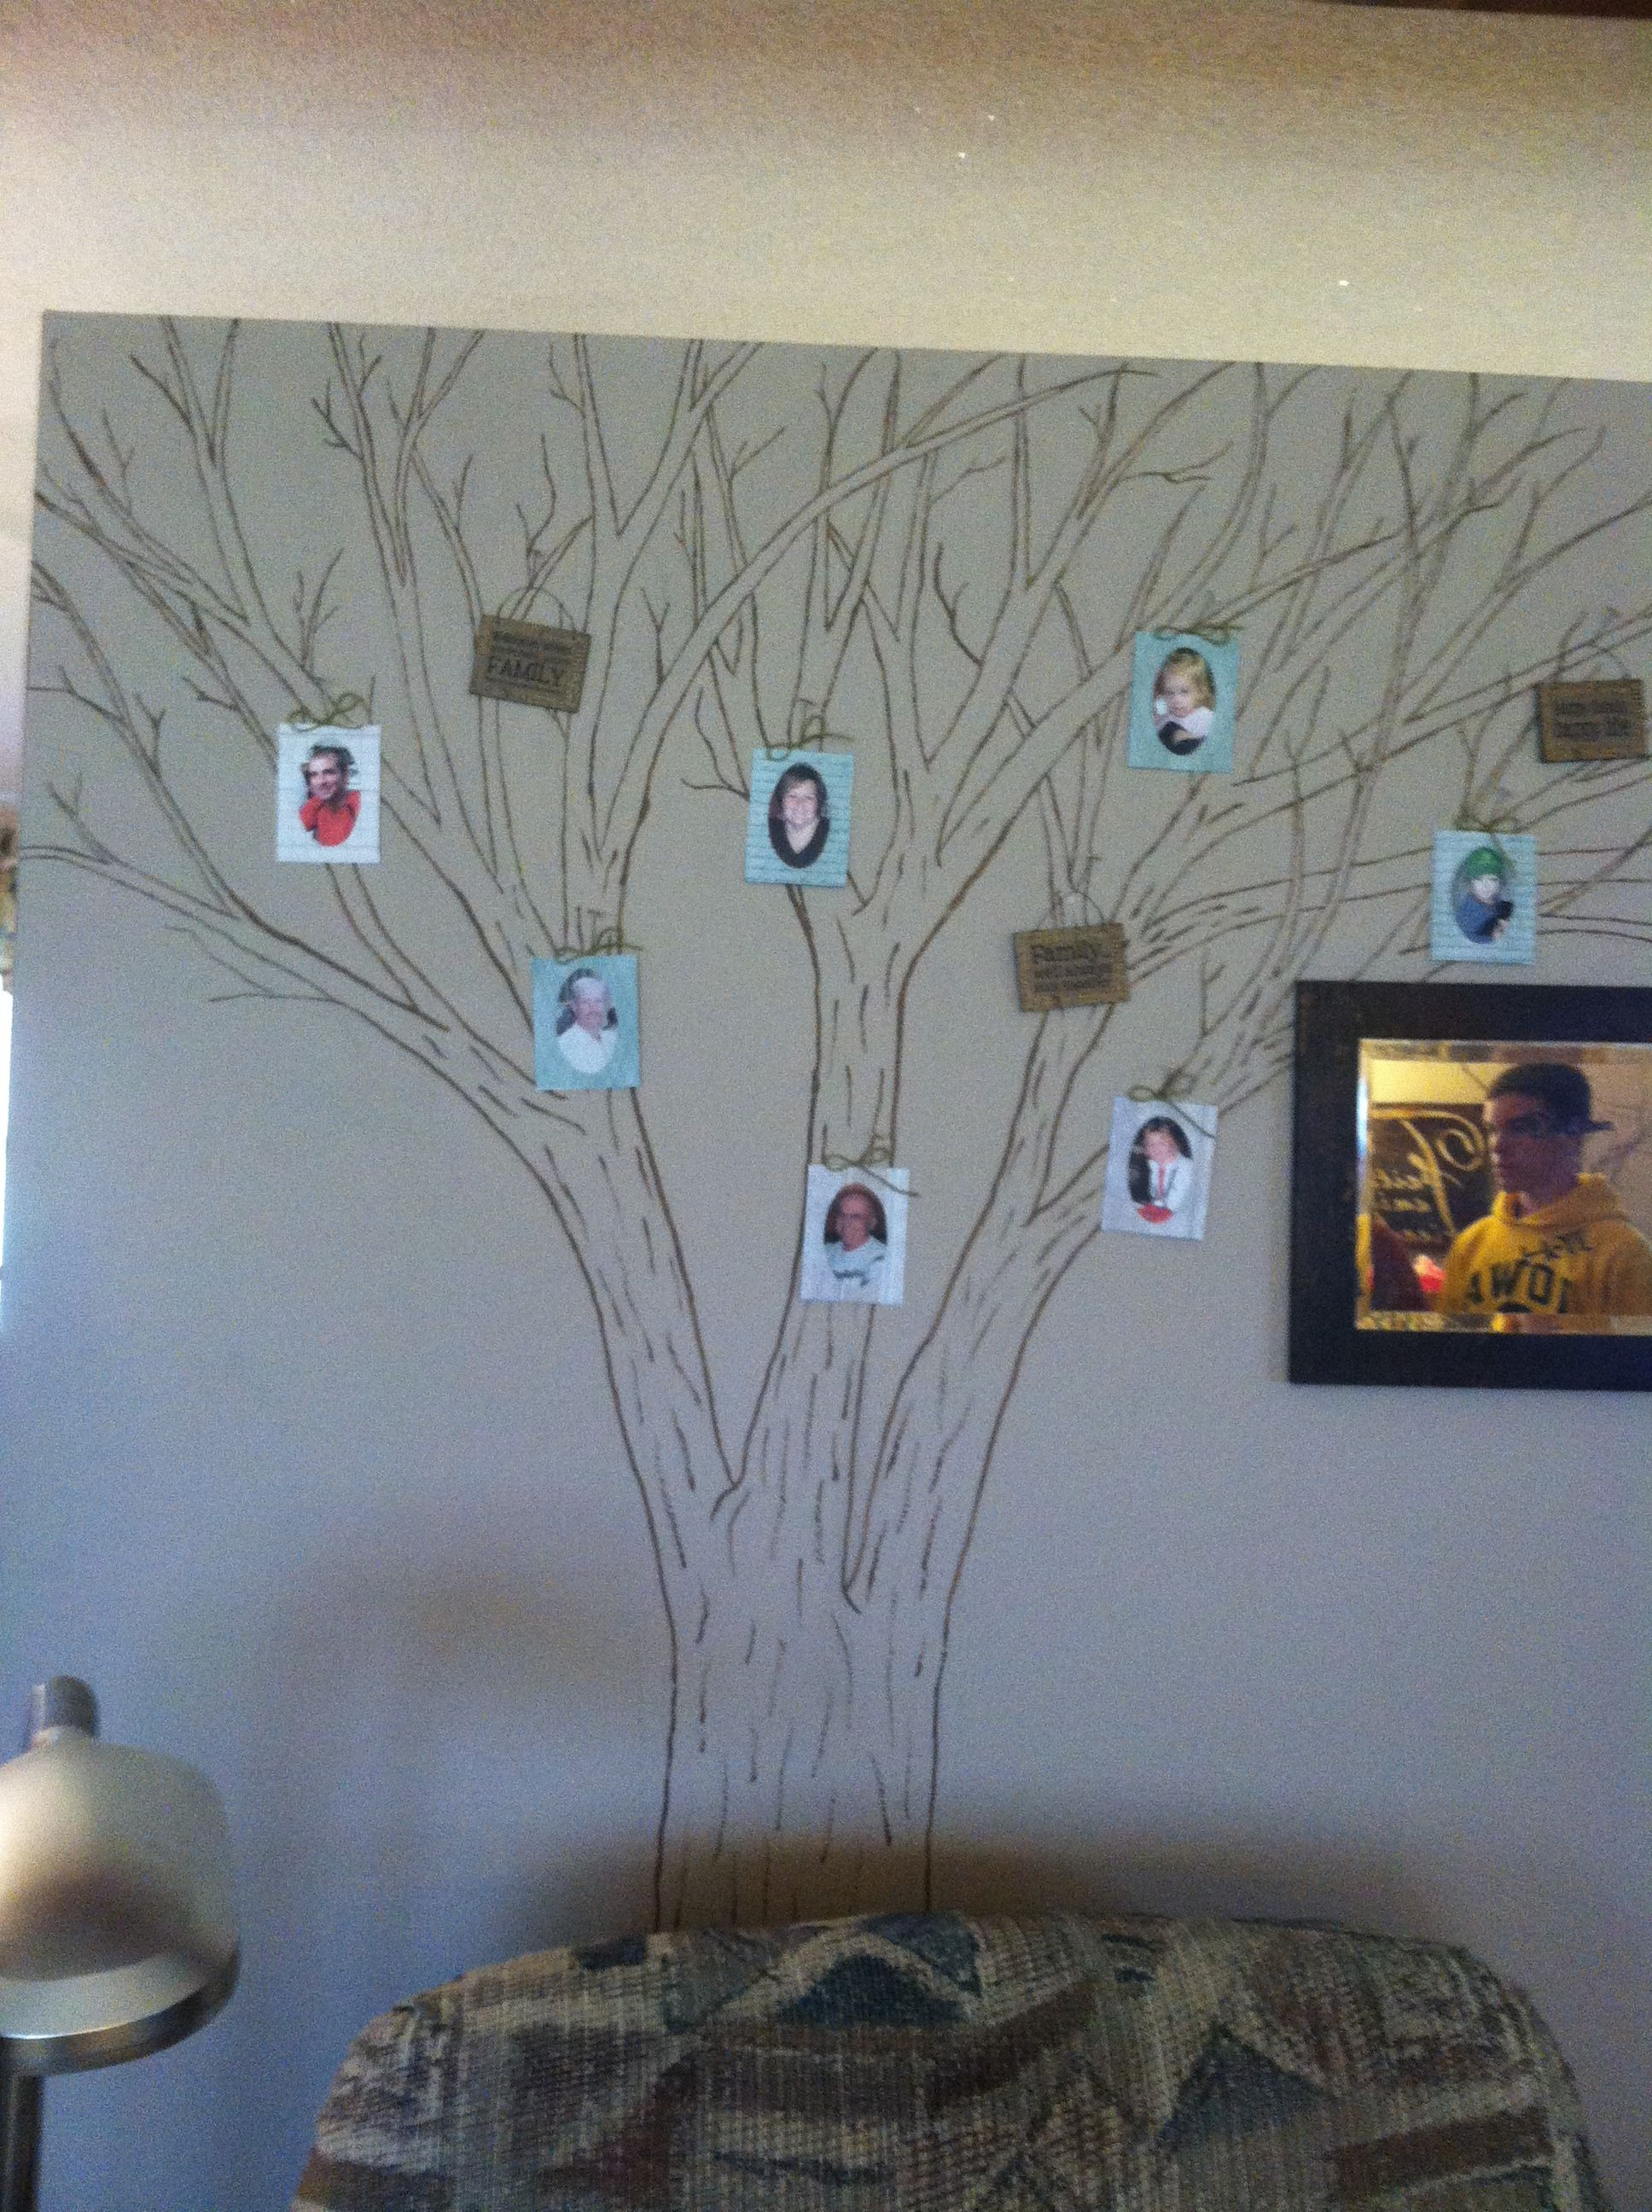 Family Room Drawings: Family Tree Drawn On The Wall